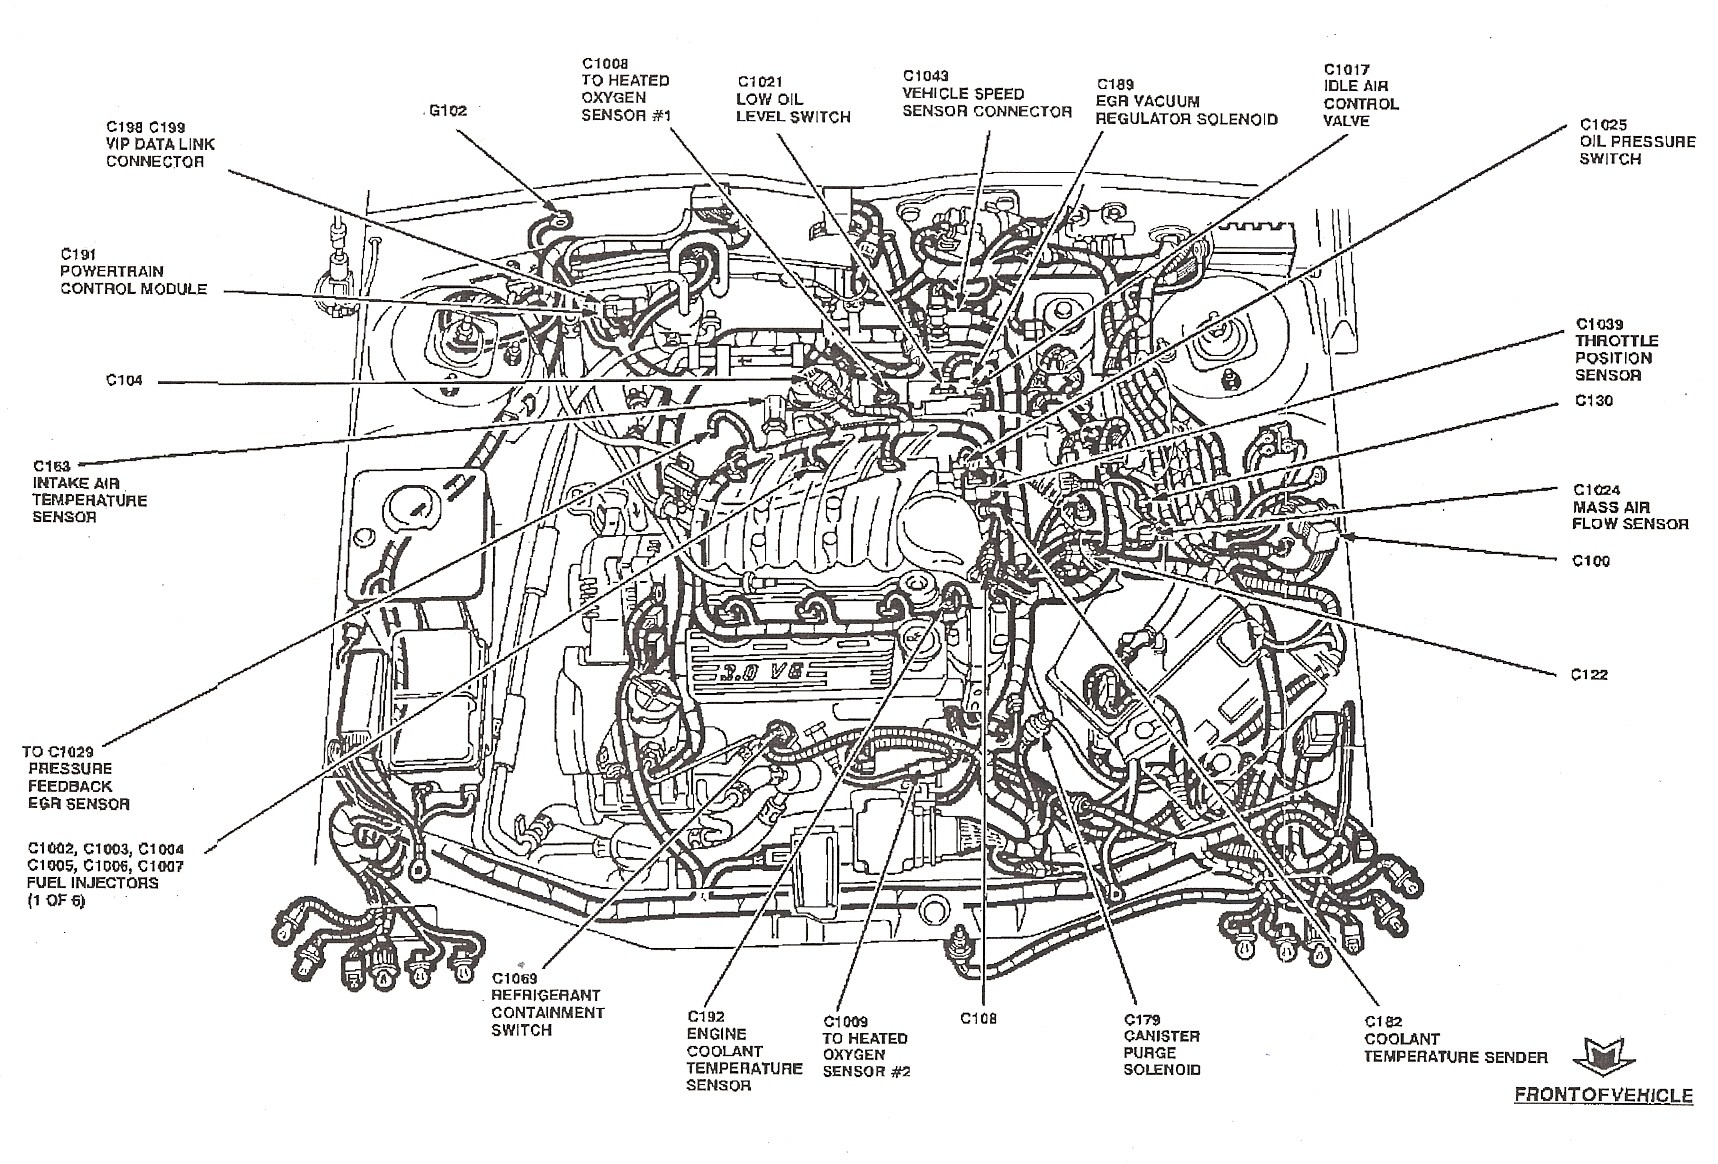 hight resolution of taurus engine diagram wiring diagram centre 98 ford taurus engine diagram 2005 ford taurus engine diagram